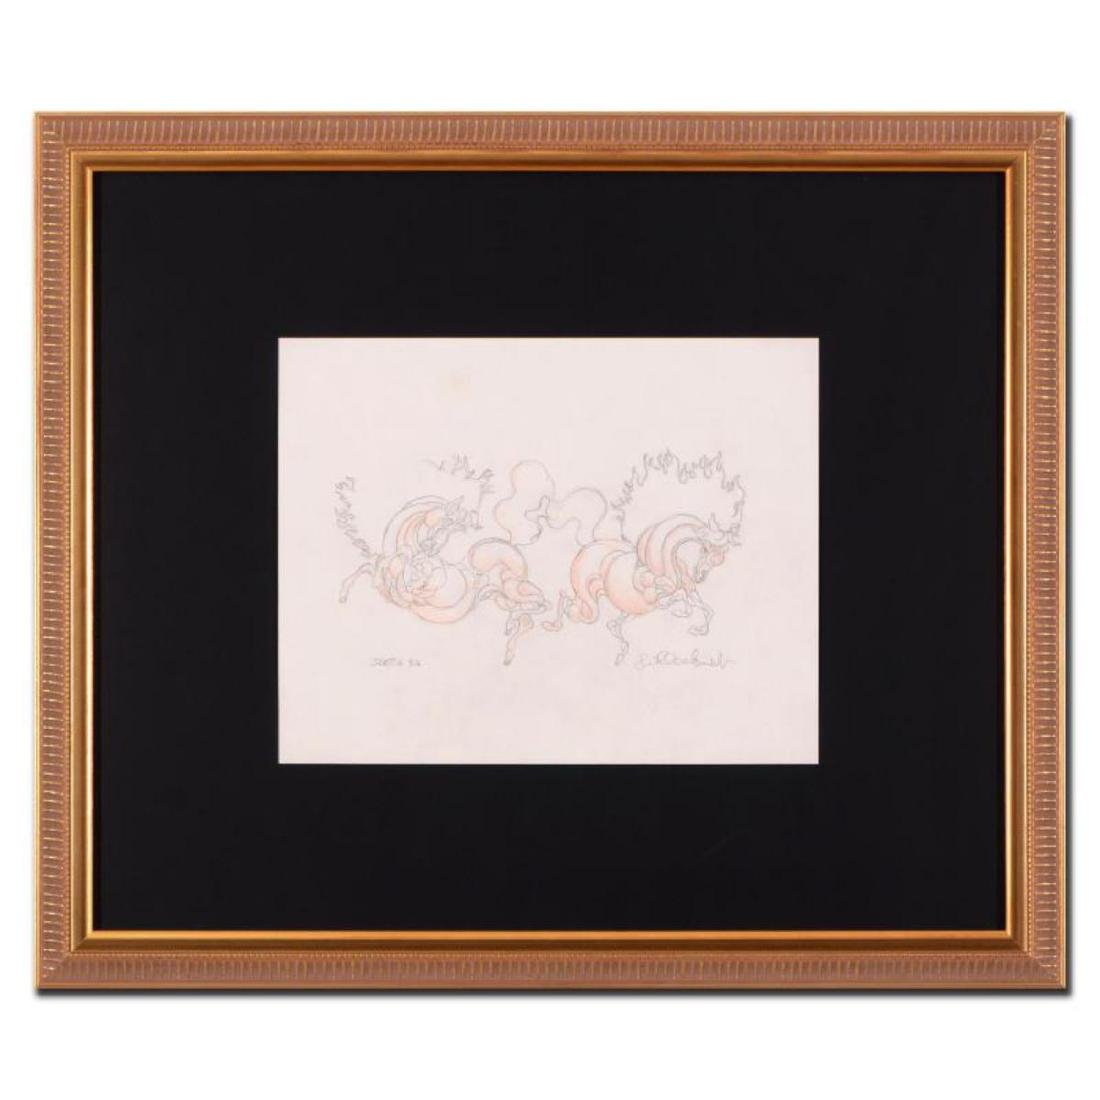 "Guillaume Azoulay - ""BG Sketch"" Framed Original"